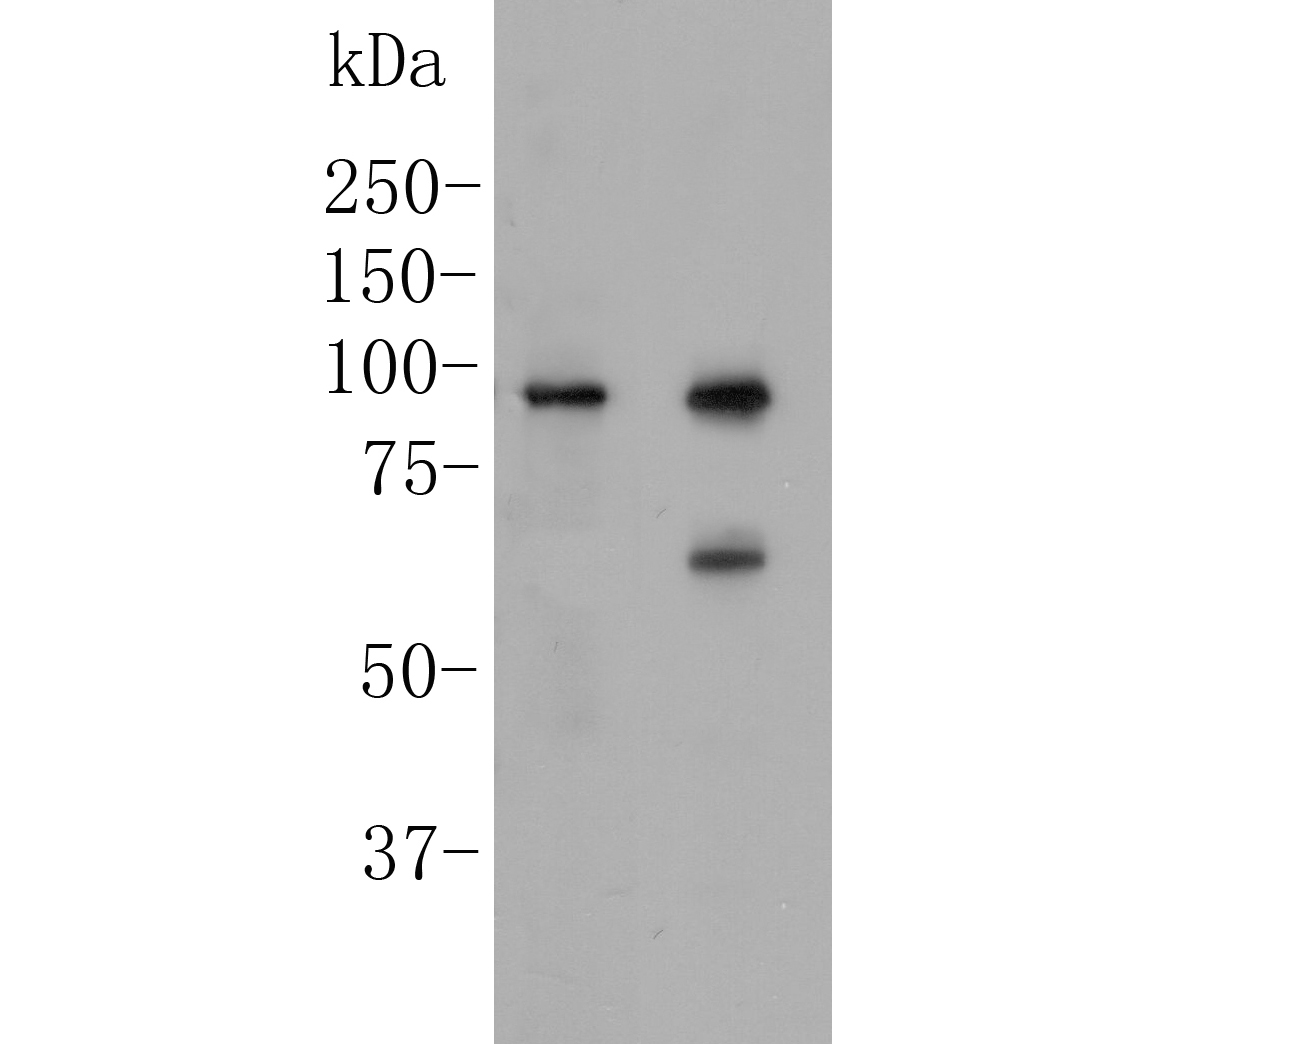 Western blot analysis of delta 1 Catenin/CAS on different lysates. Proteins were transferred to a PVDF membrane and blocked with 5% BSA in PBS for 1 hour at room temperature. The primary antibody (ER1901-80, 1/500) was used in 5% BSA at room temperature for 2 hours. Goat Anti-Rabbit IgG - HRP Secondary Antibody (HA1001) at 1:5,000 dilution was used for 1 hour at room temperature.<br /> Positive control: <br /> Lane 1: Siha cell lysate<br /> Lane 2: A431 cell lysate